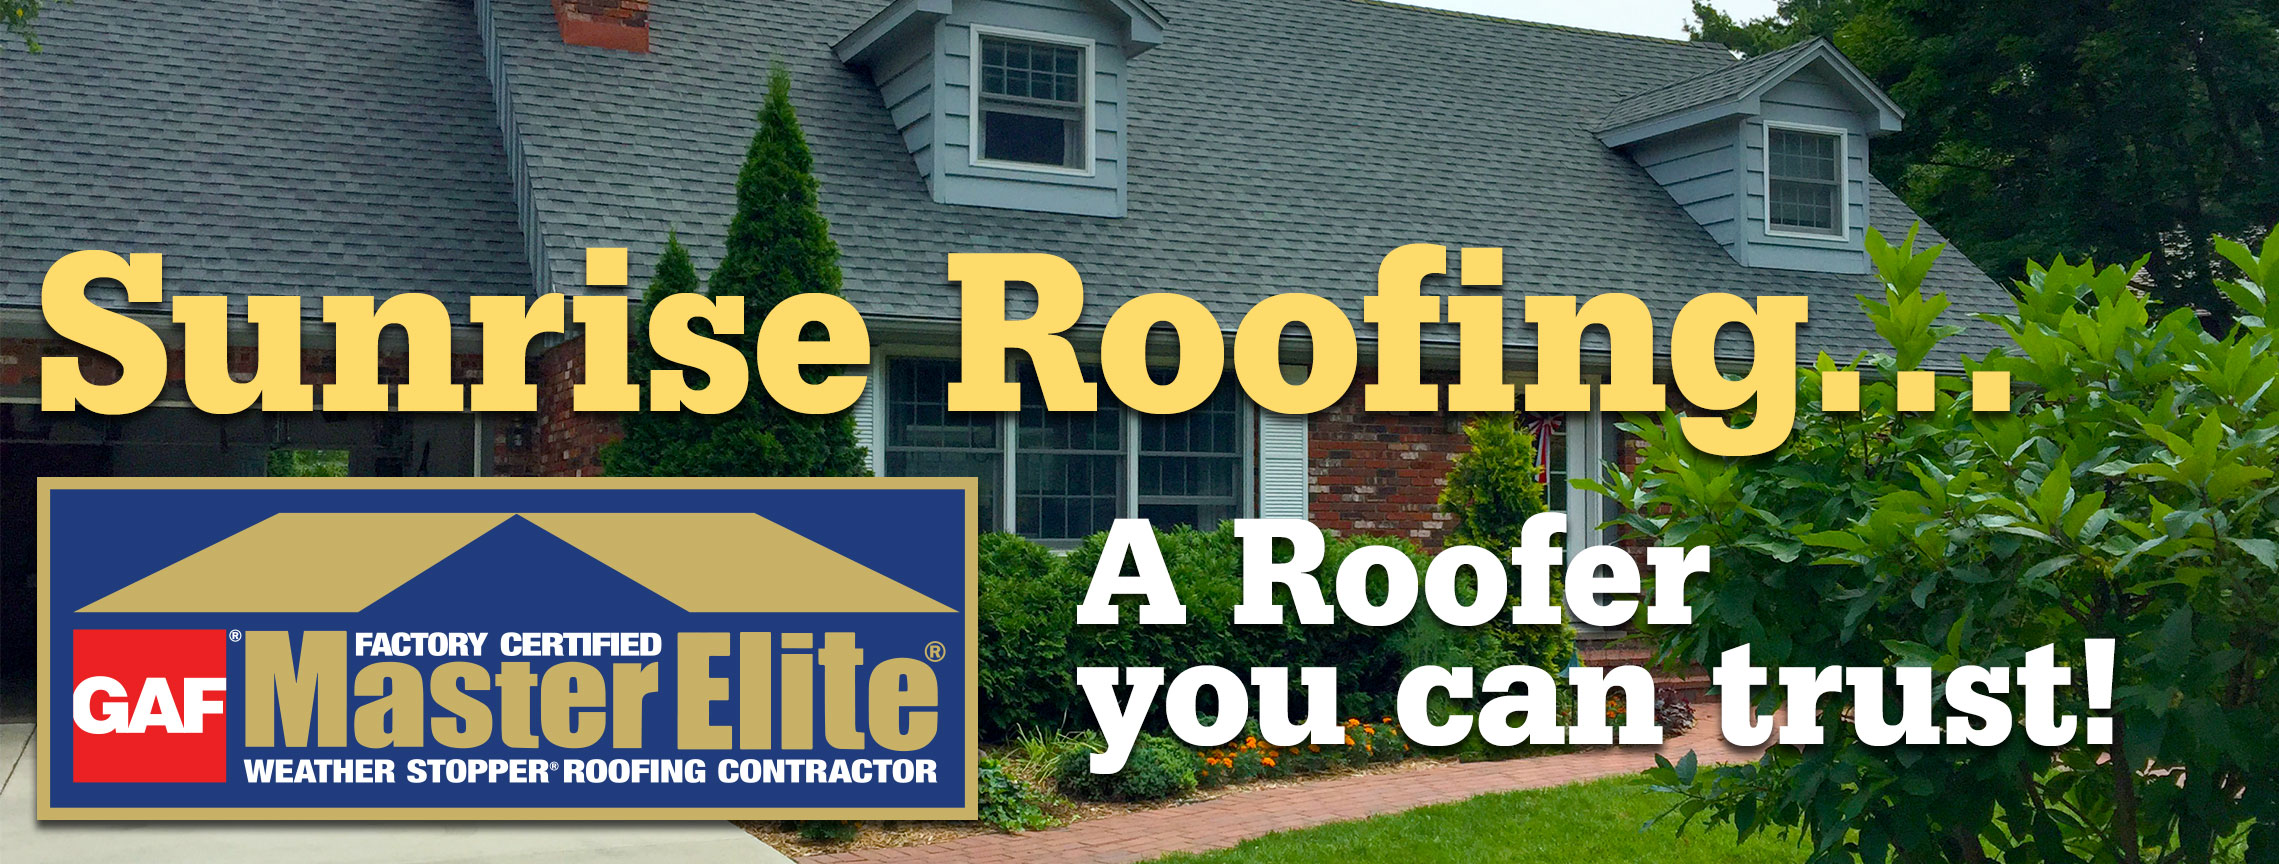 Sunrise Roofing... a roofer you can trust